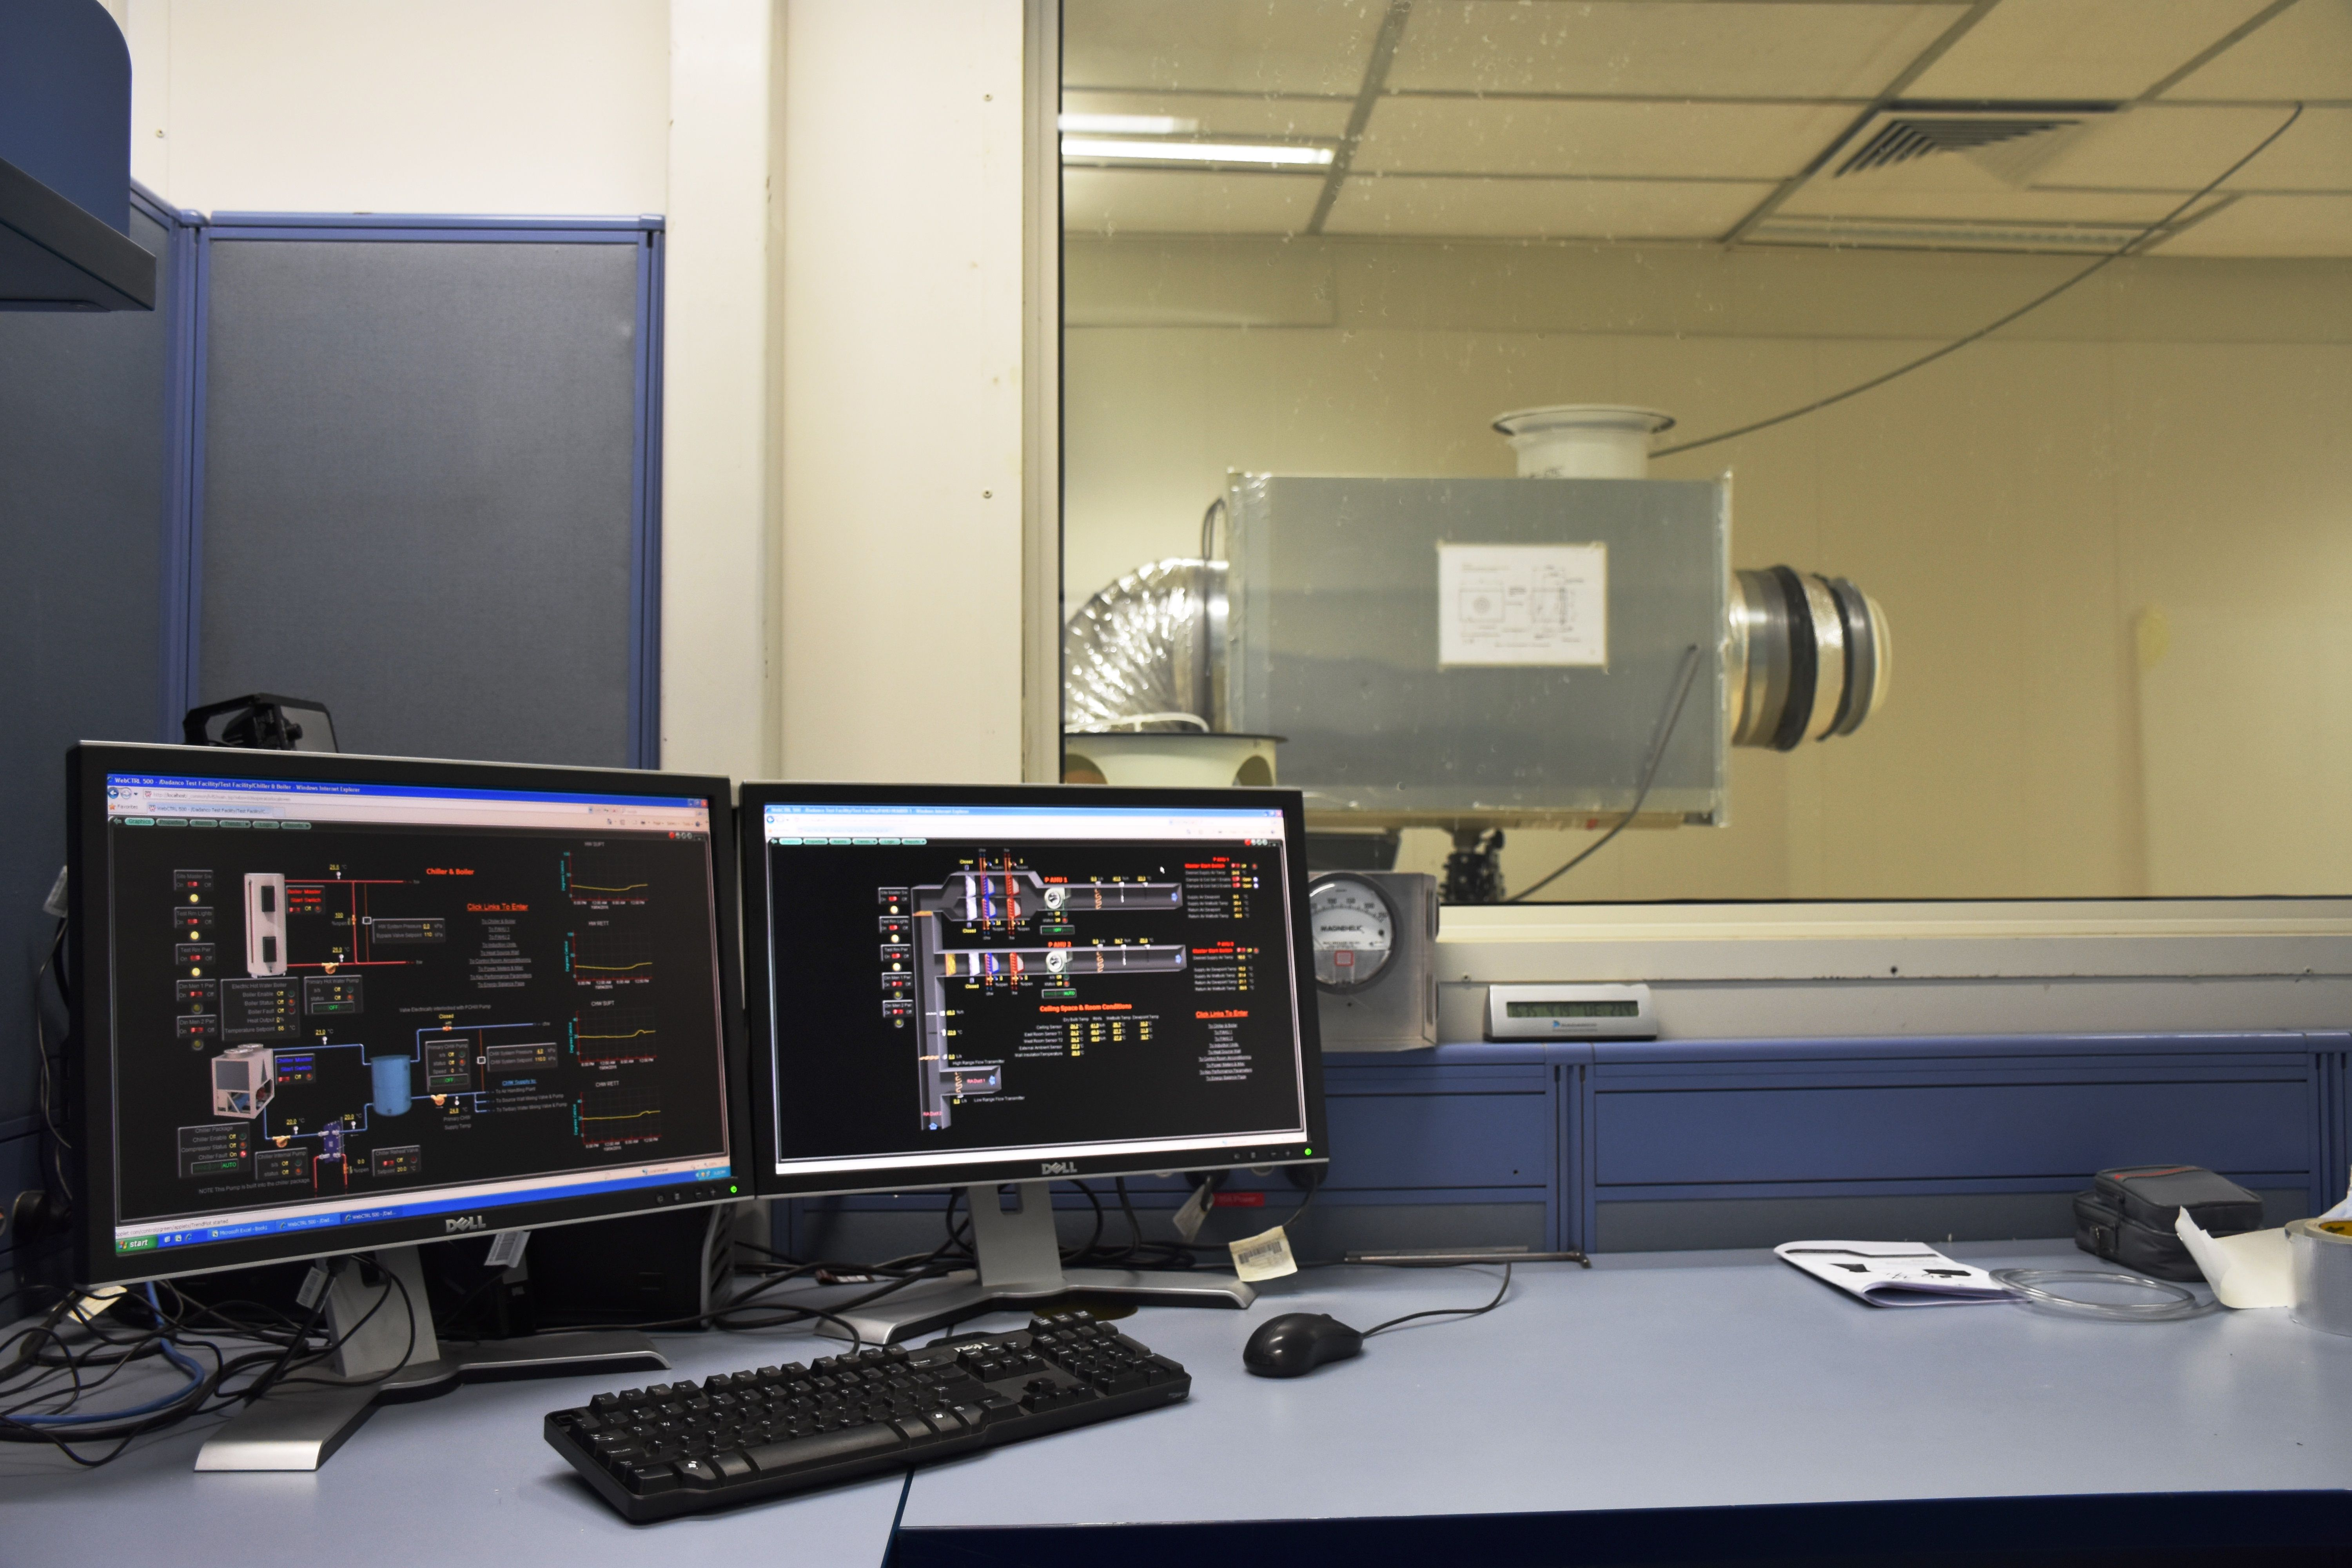 Thermal Environment Test Laboratory image